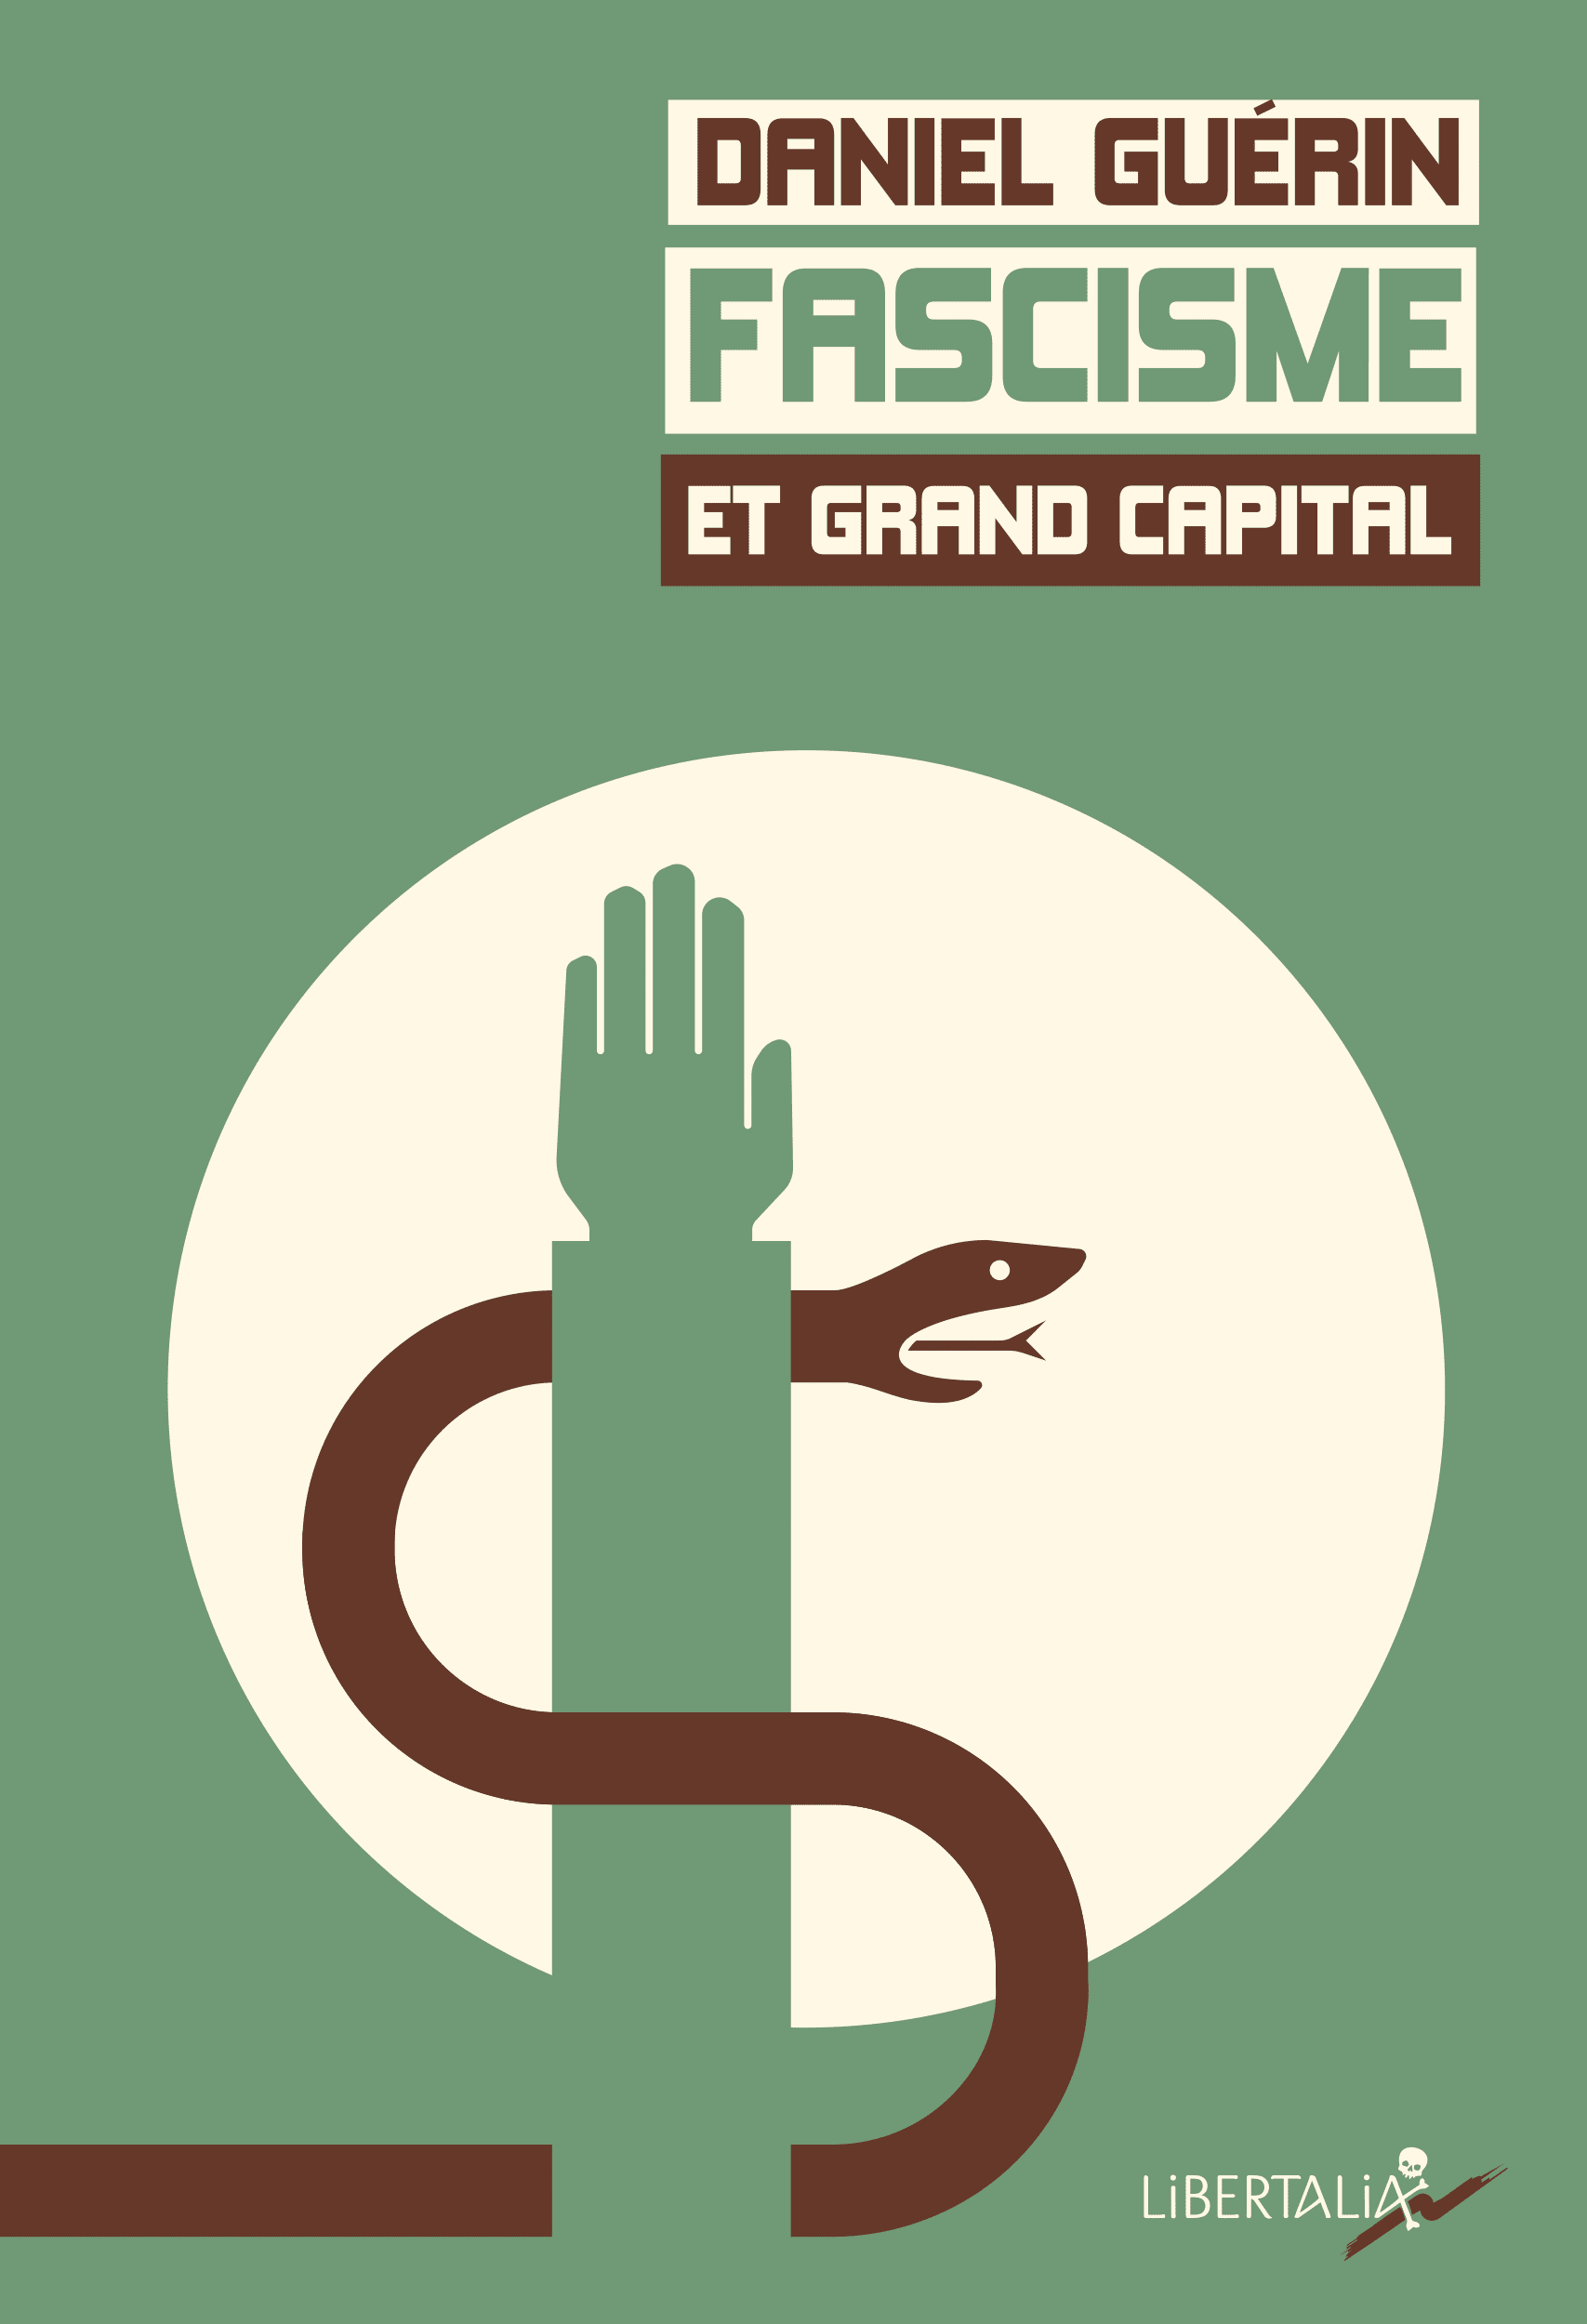 Fascisme et grand capital par Bruno Bartkowiak, graphiste illustrateur en Ariège, Occitanie.